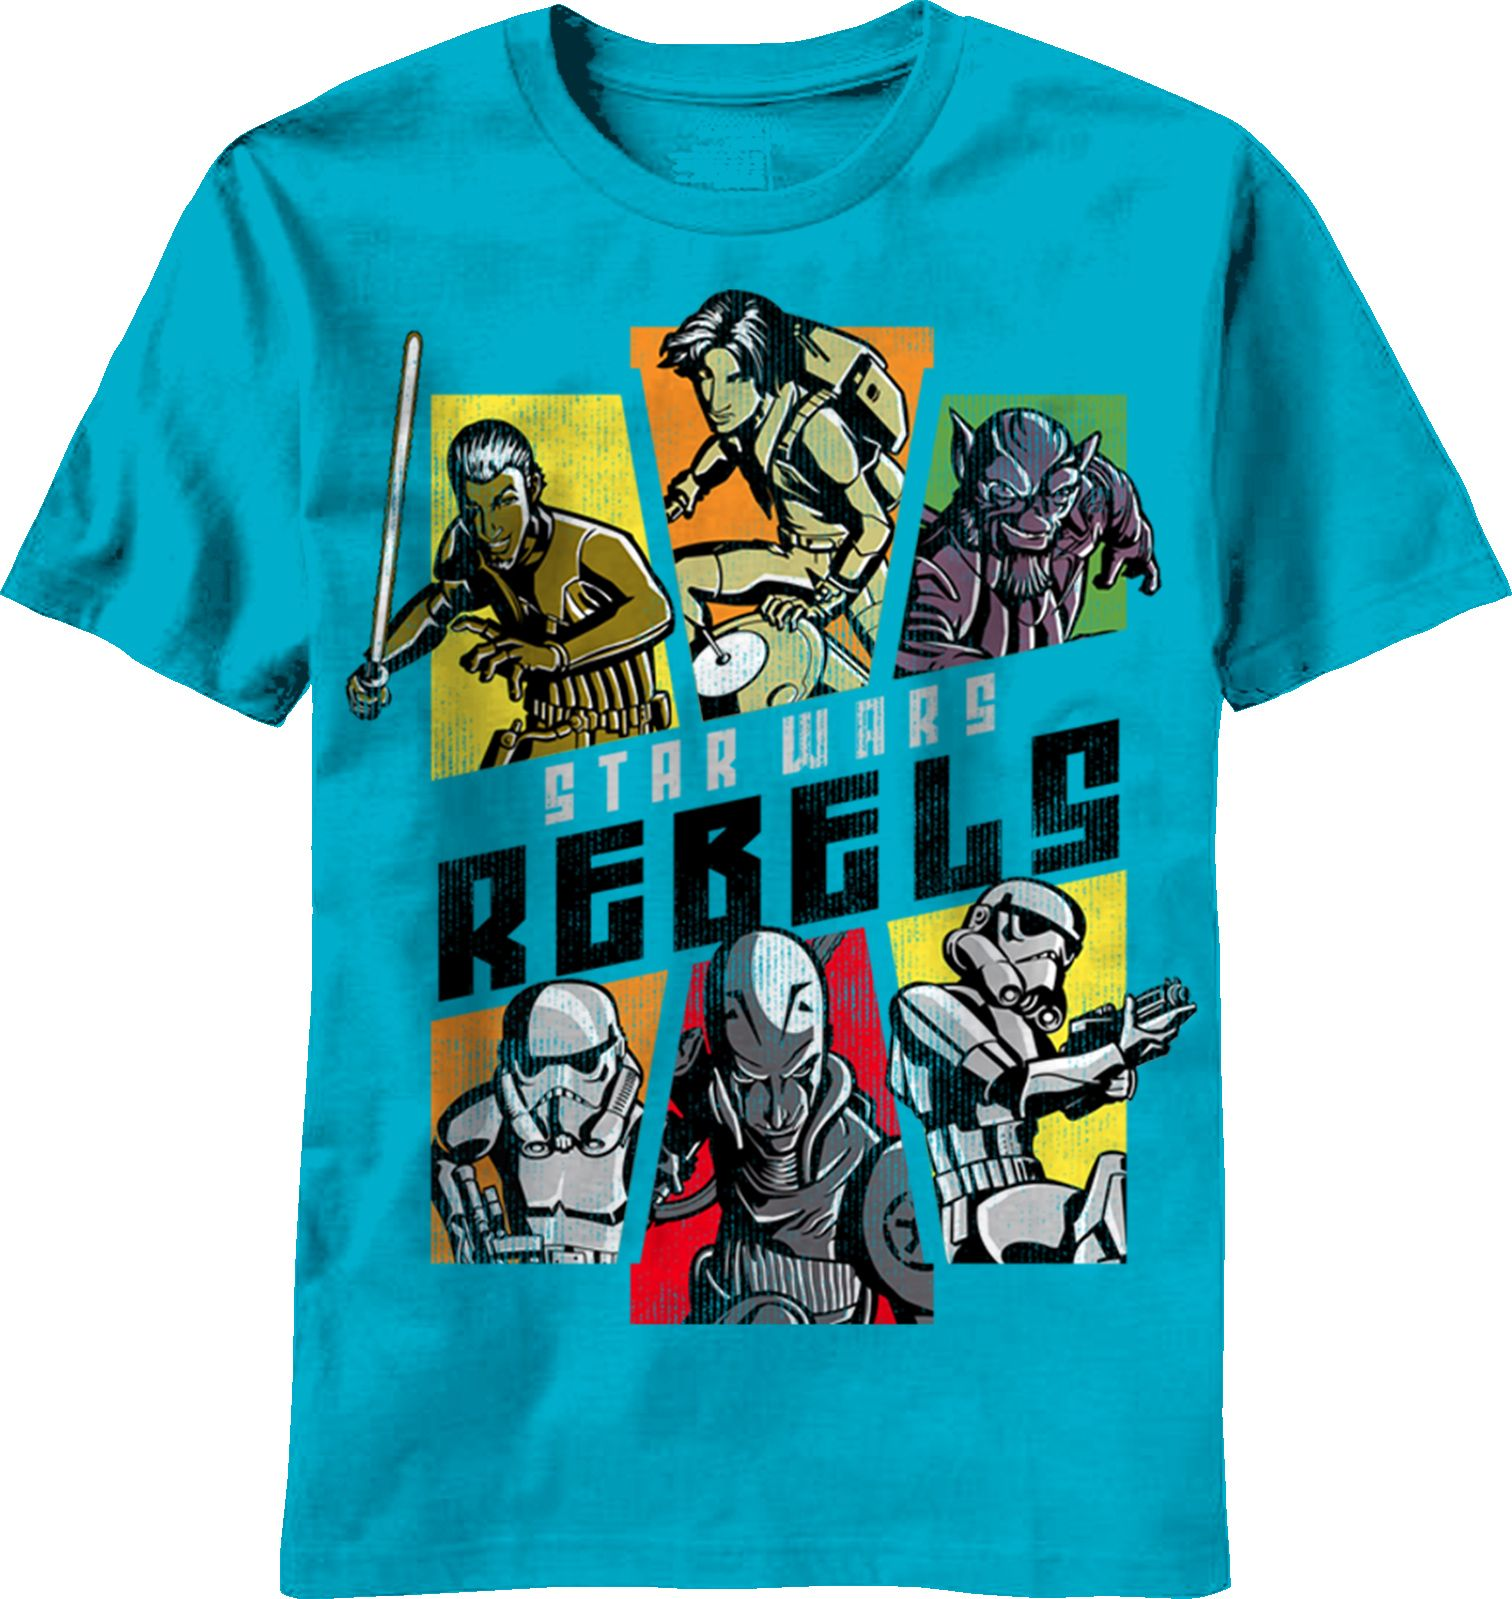 Star Wars Day of the Rebels Youth Turquoise Shirt